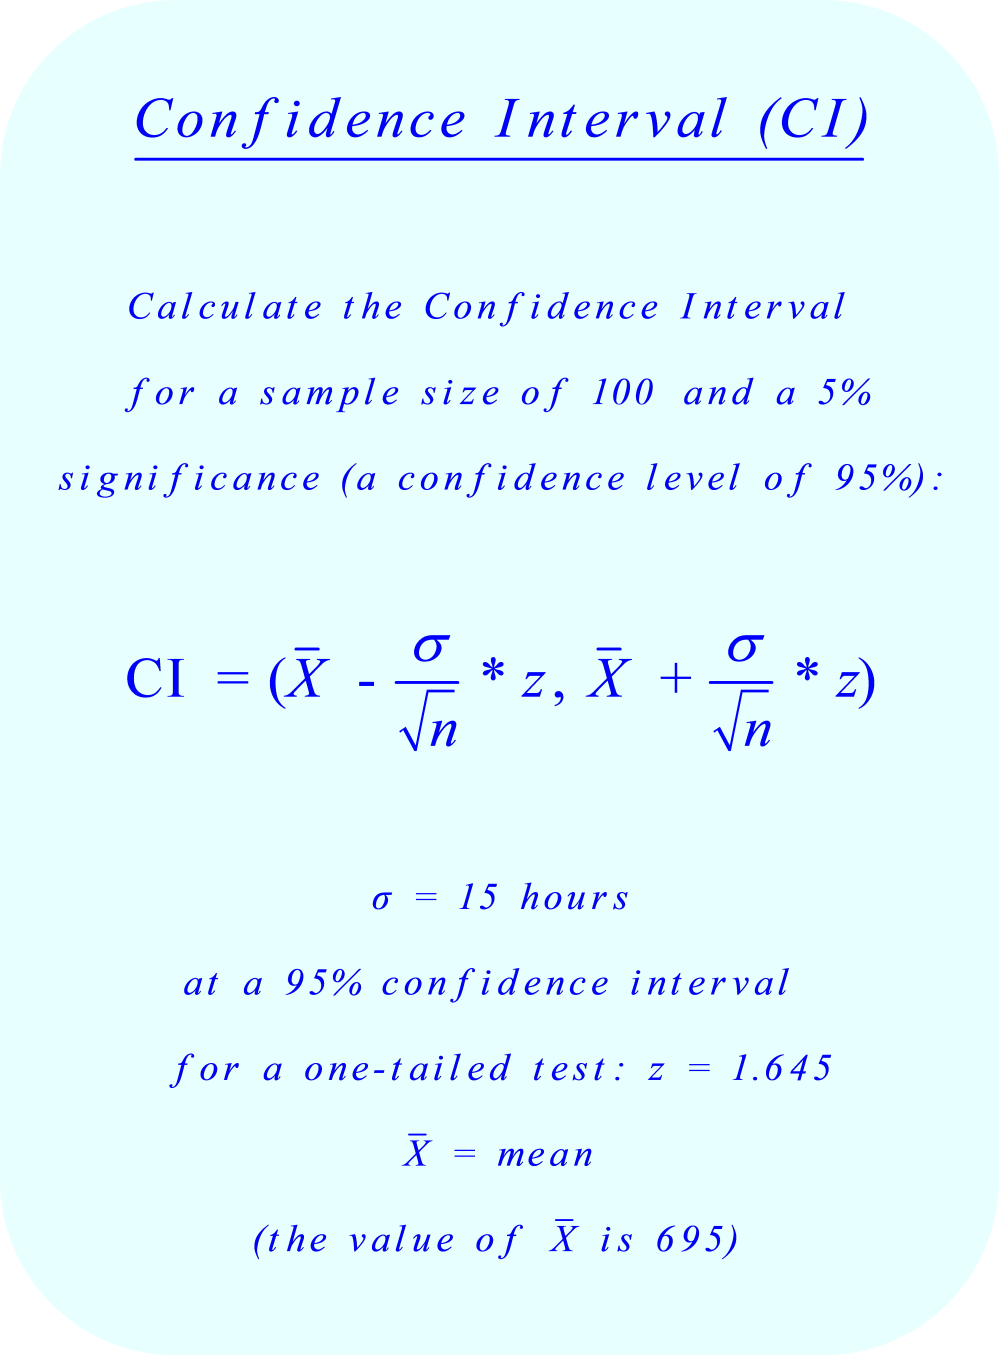 Calculate the confidence interval (CI): 